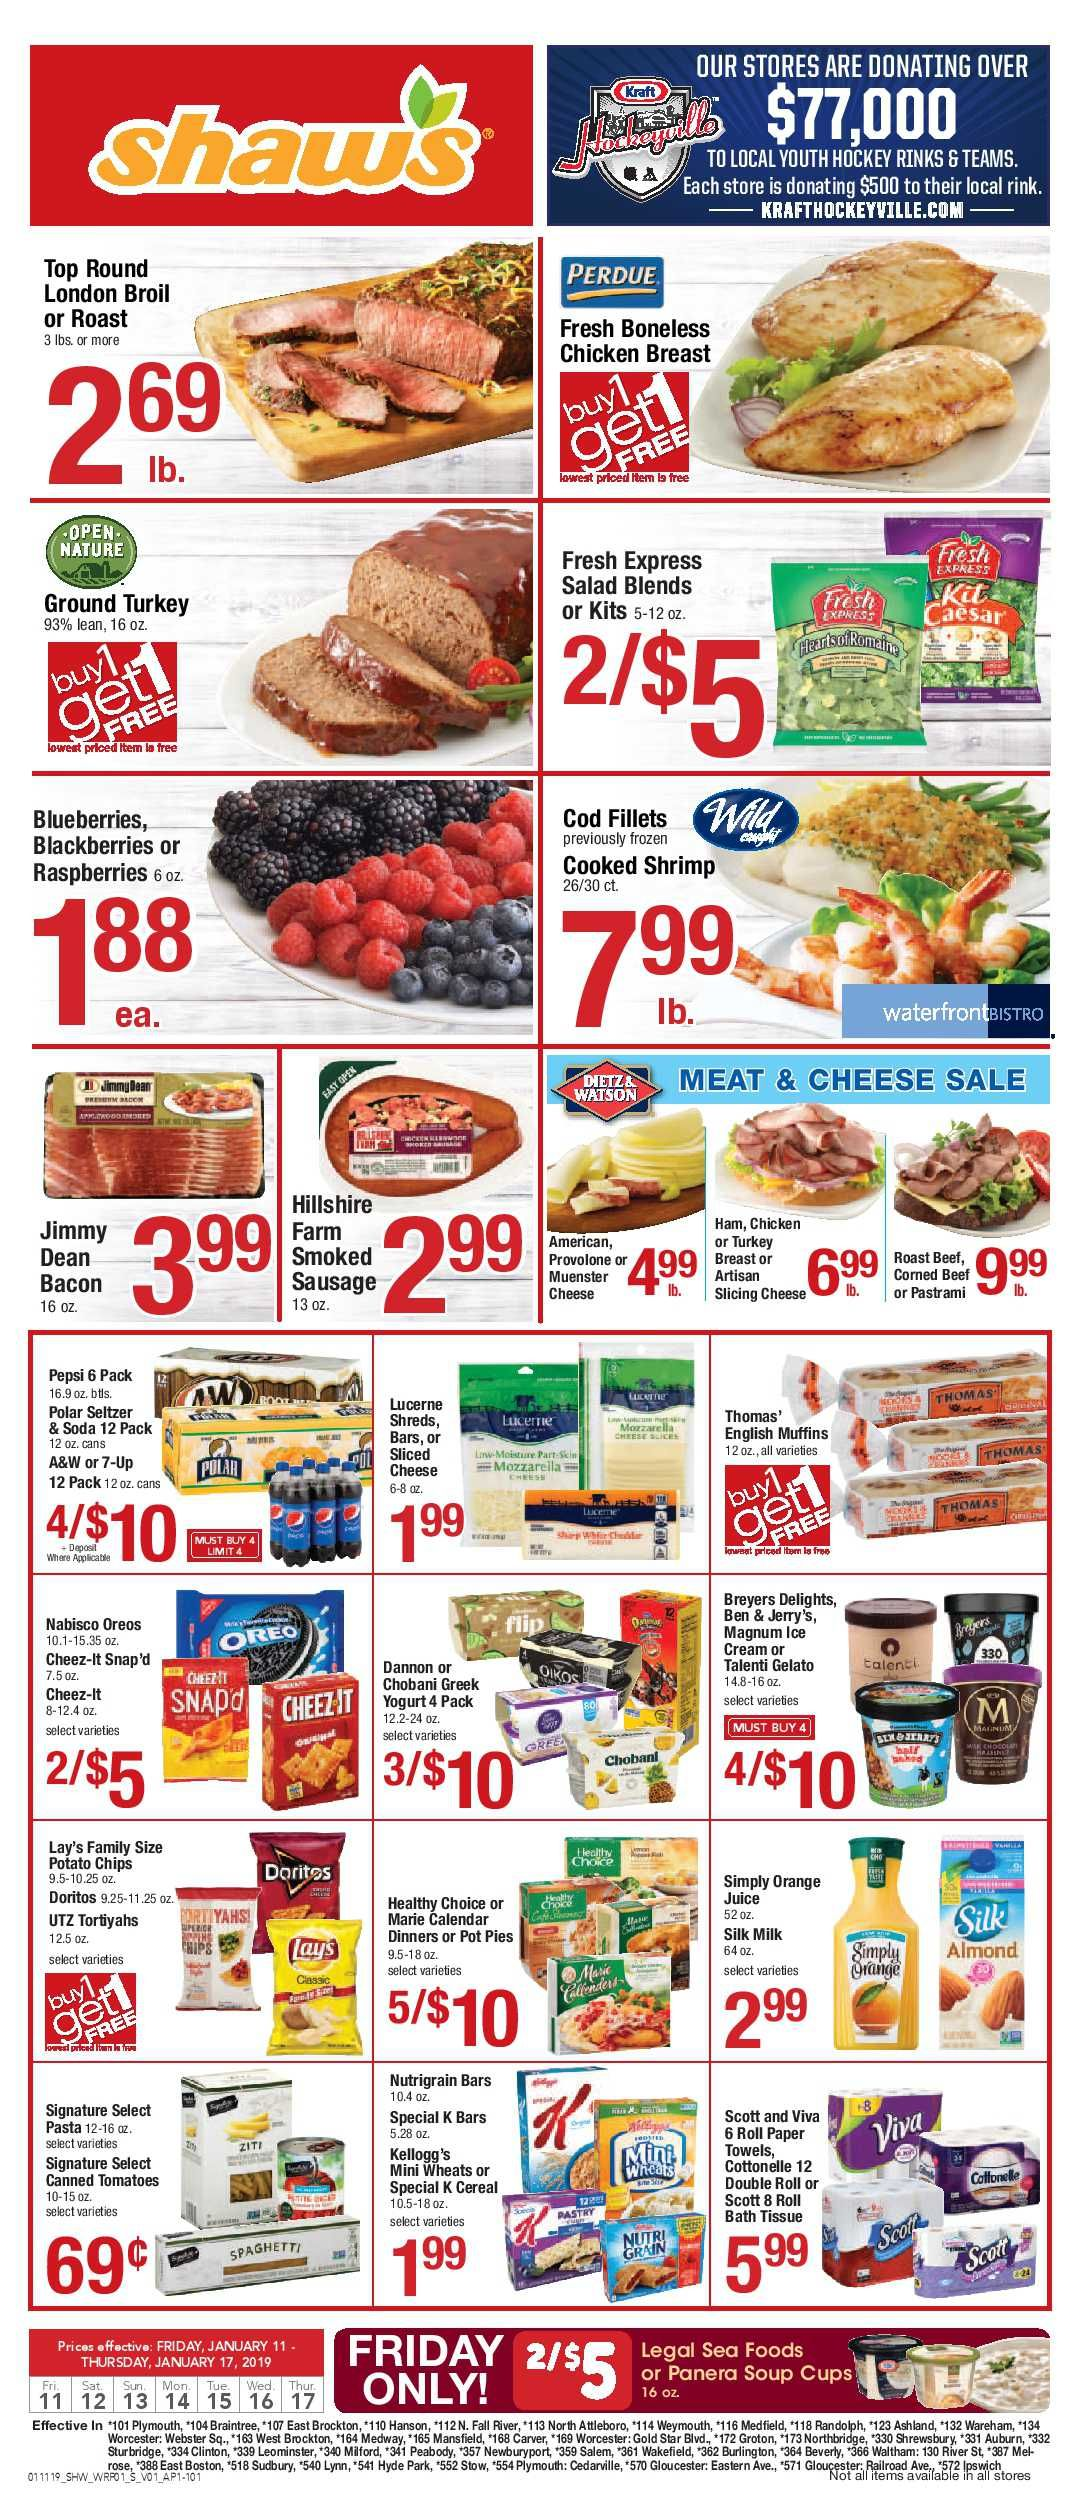 Shaw's Weekly ad Flyer January 18 - 24, 2019 | Weekly Ad